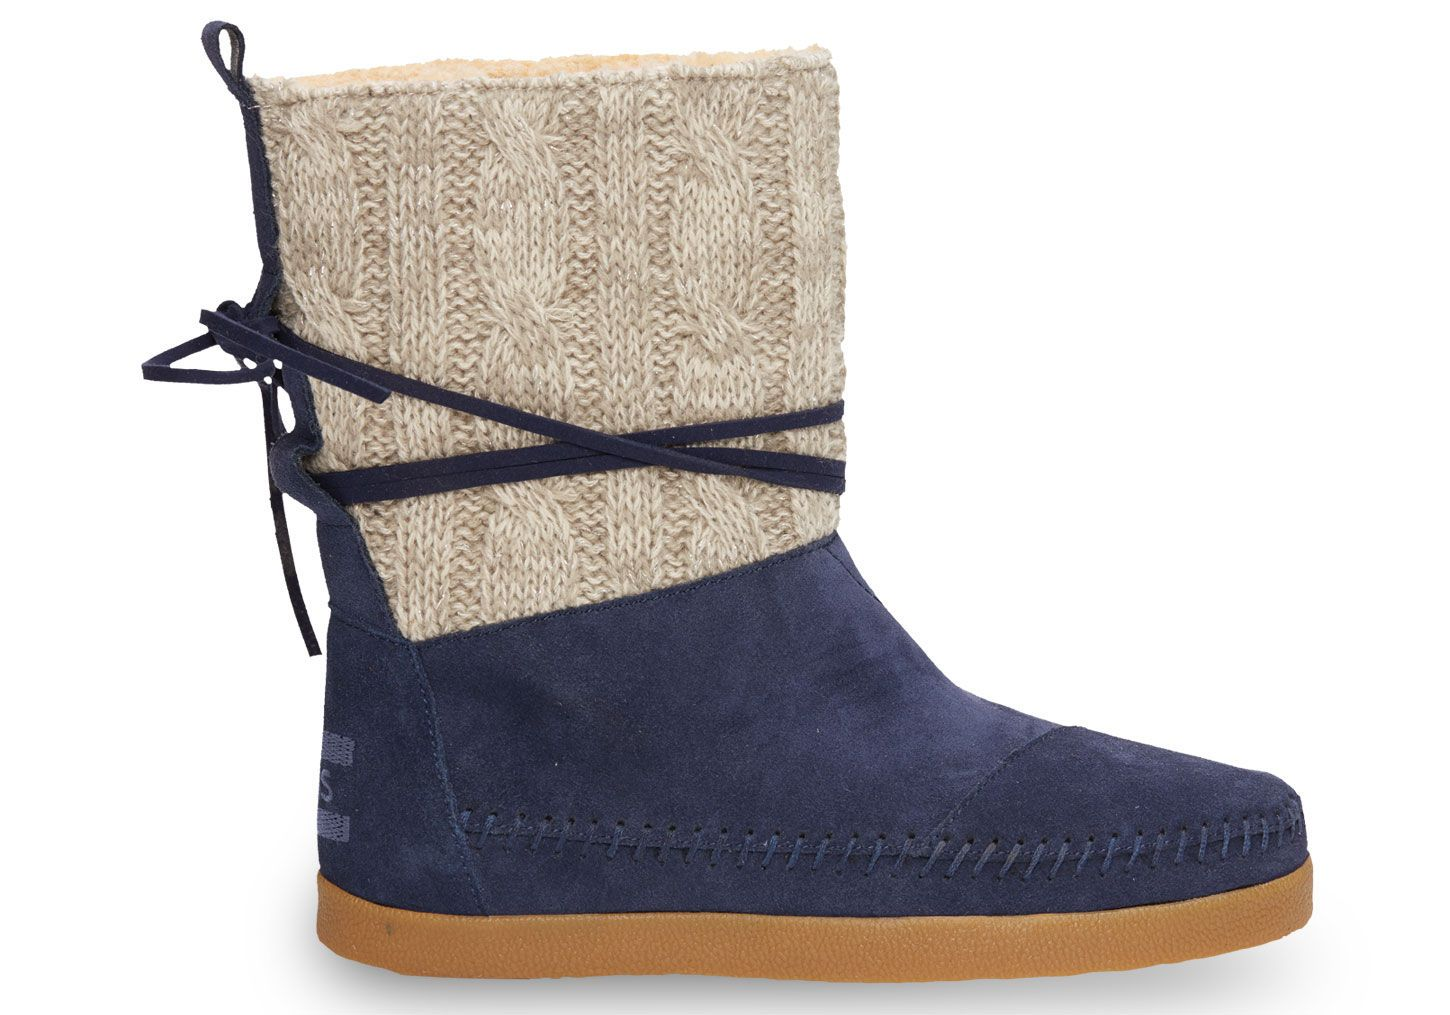 Tom's Navy Cable Knit Suede Women's Nepal Boots